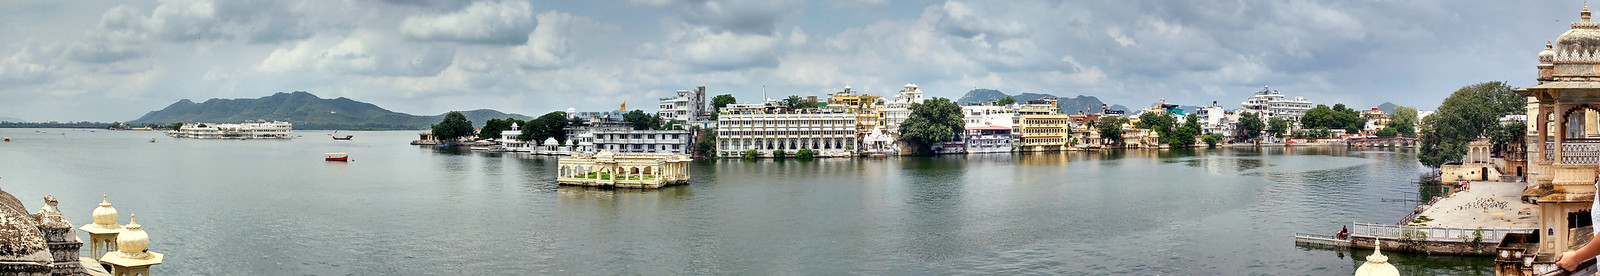 Lake Pichola Panorama